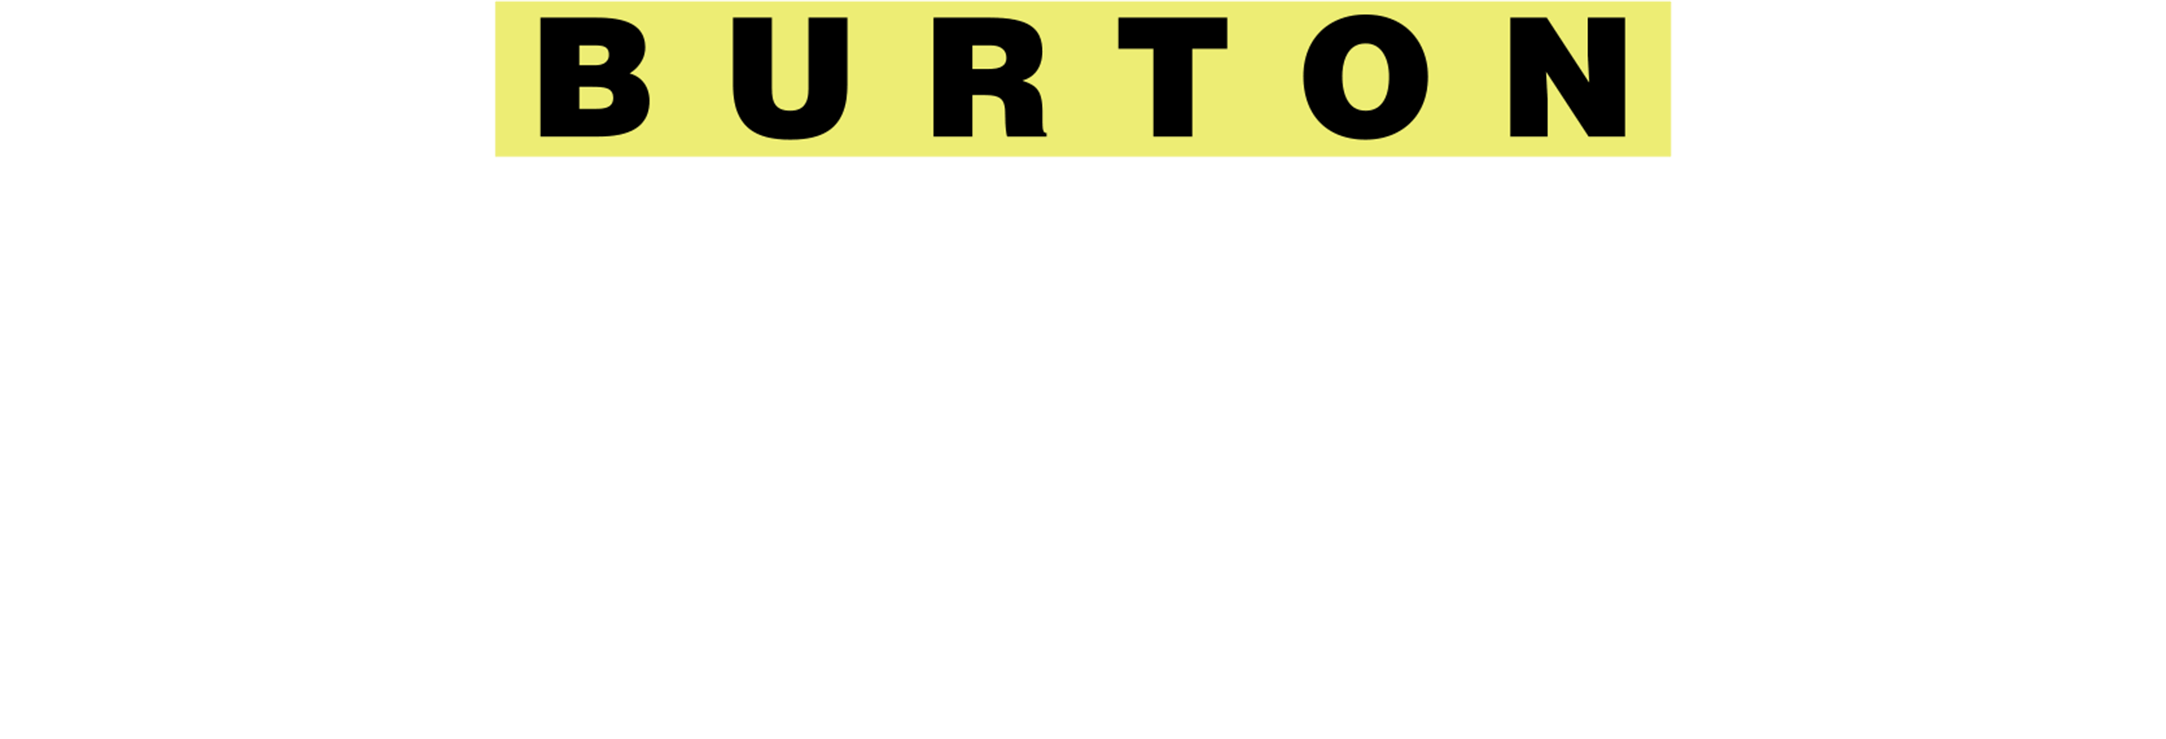 burtonusopen_2020_titletreatment_logo